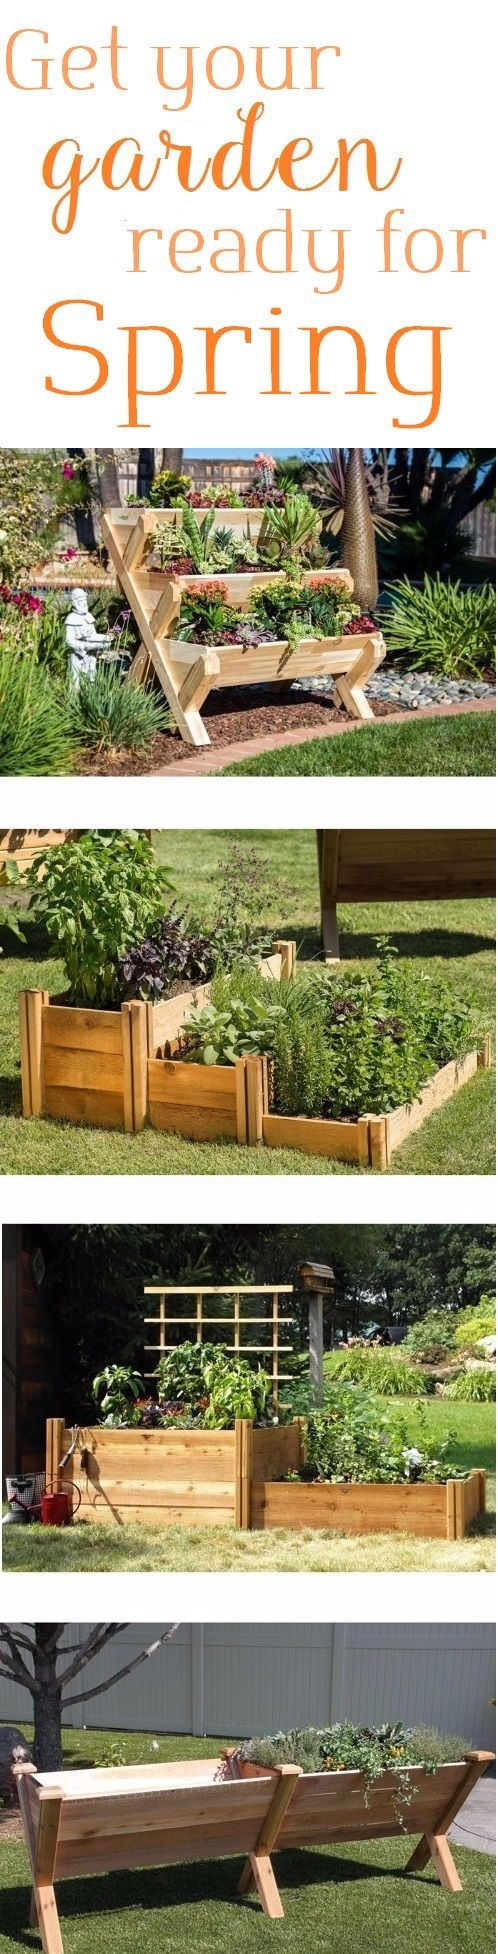 Get your garden ready for spring!